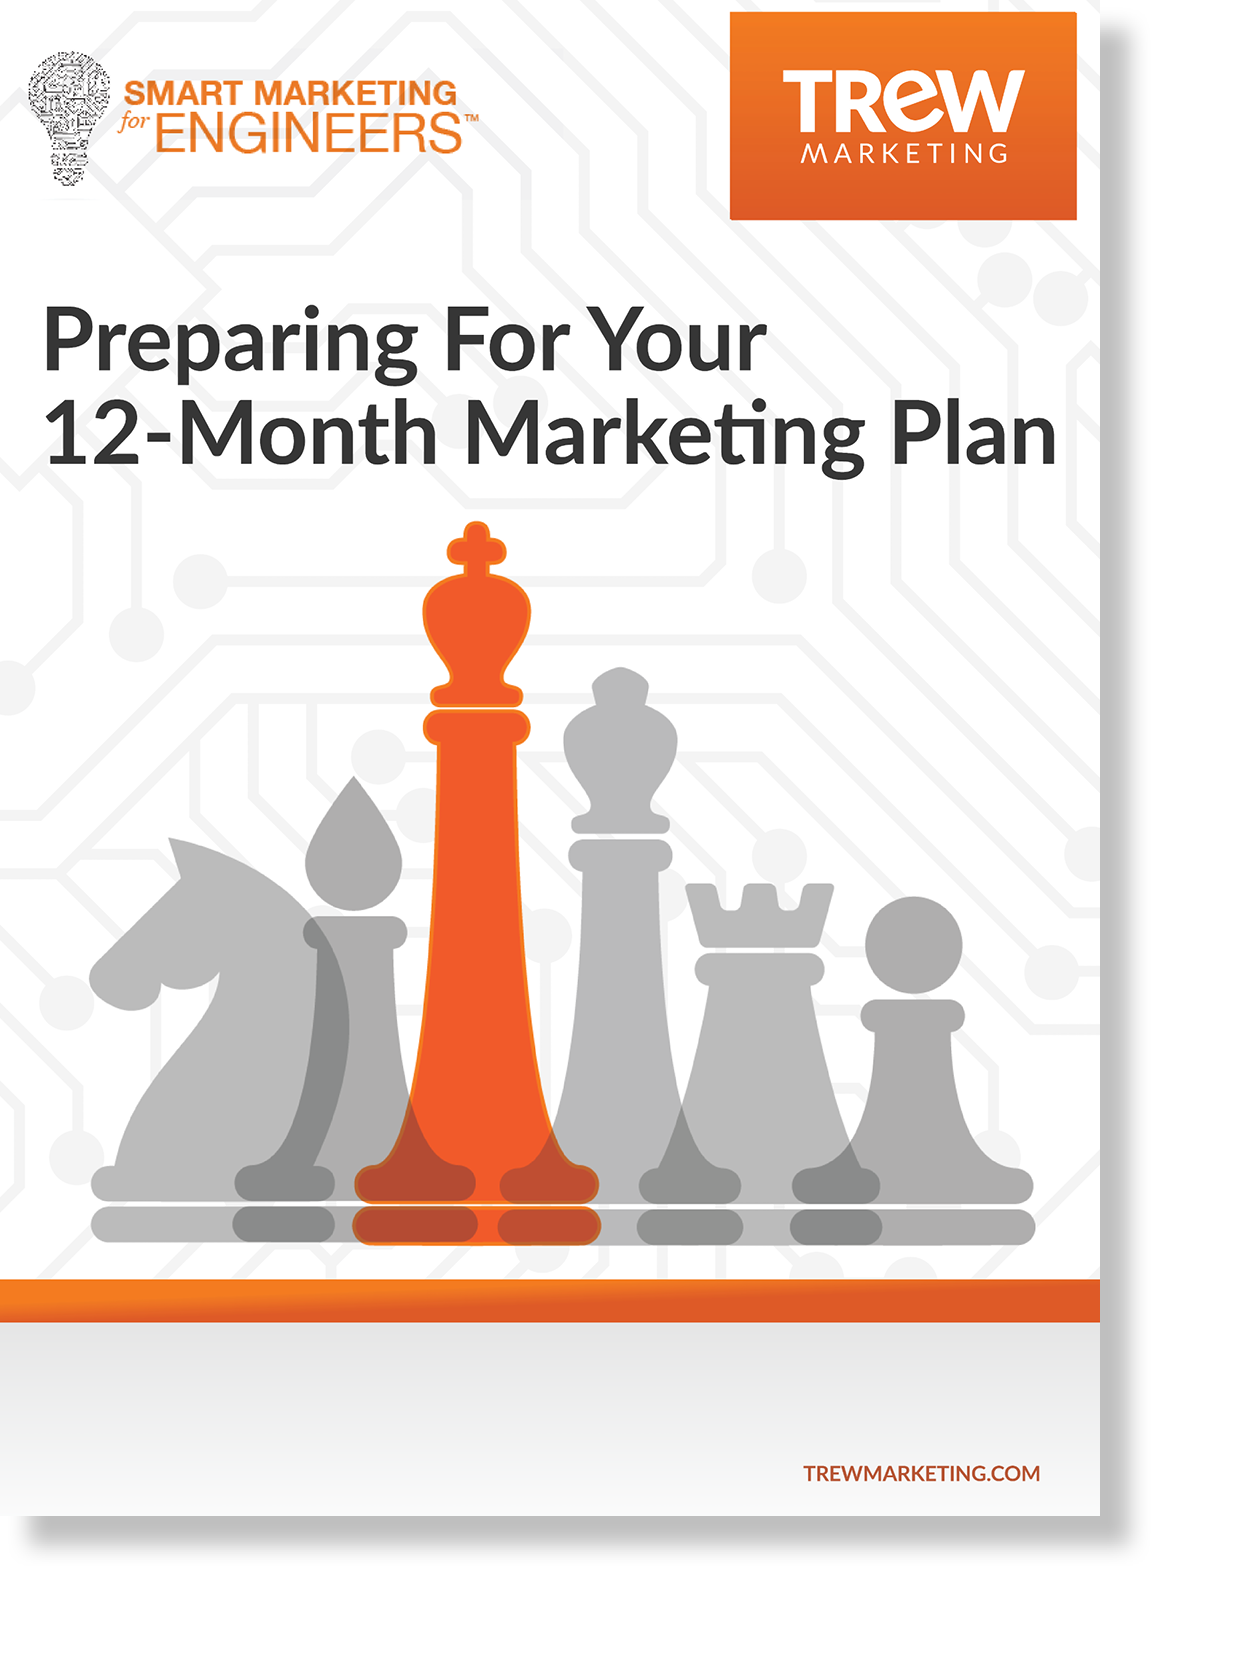 PreparingForYour12MonthMarketingPlan